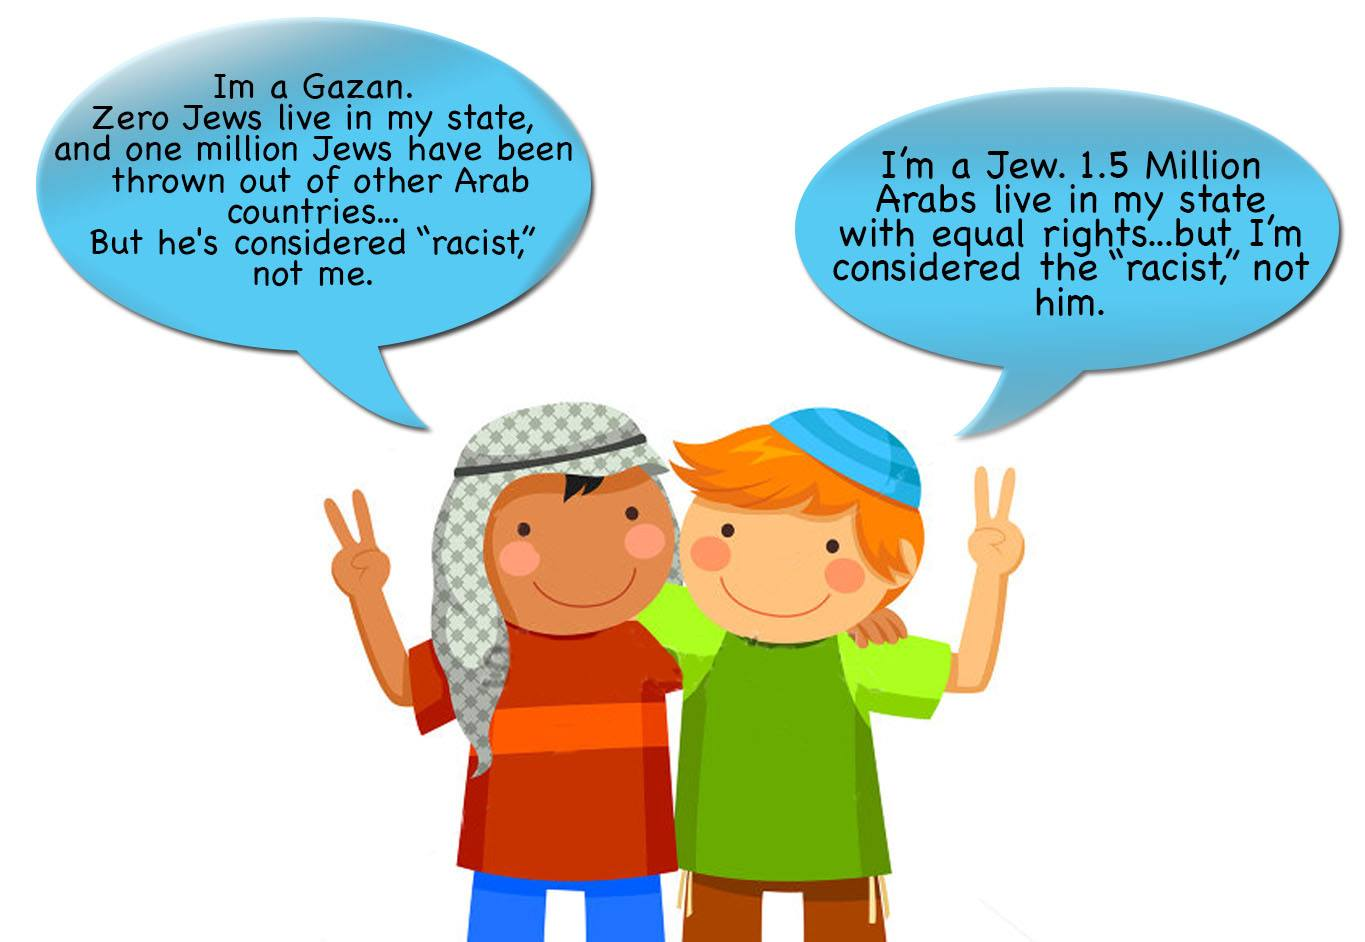 Racism double stands for Israel and Gaza